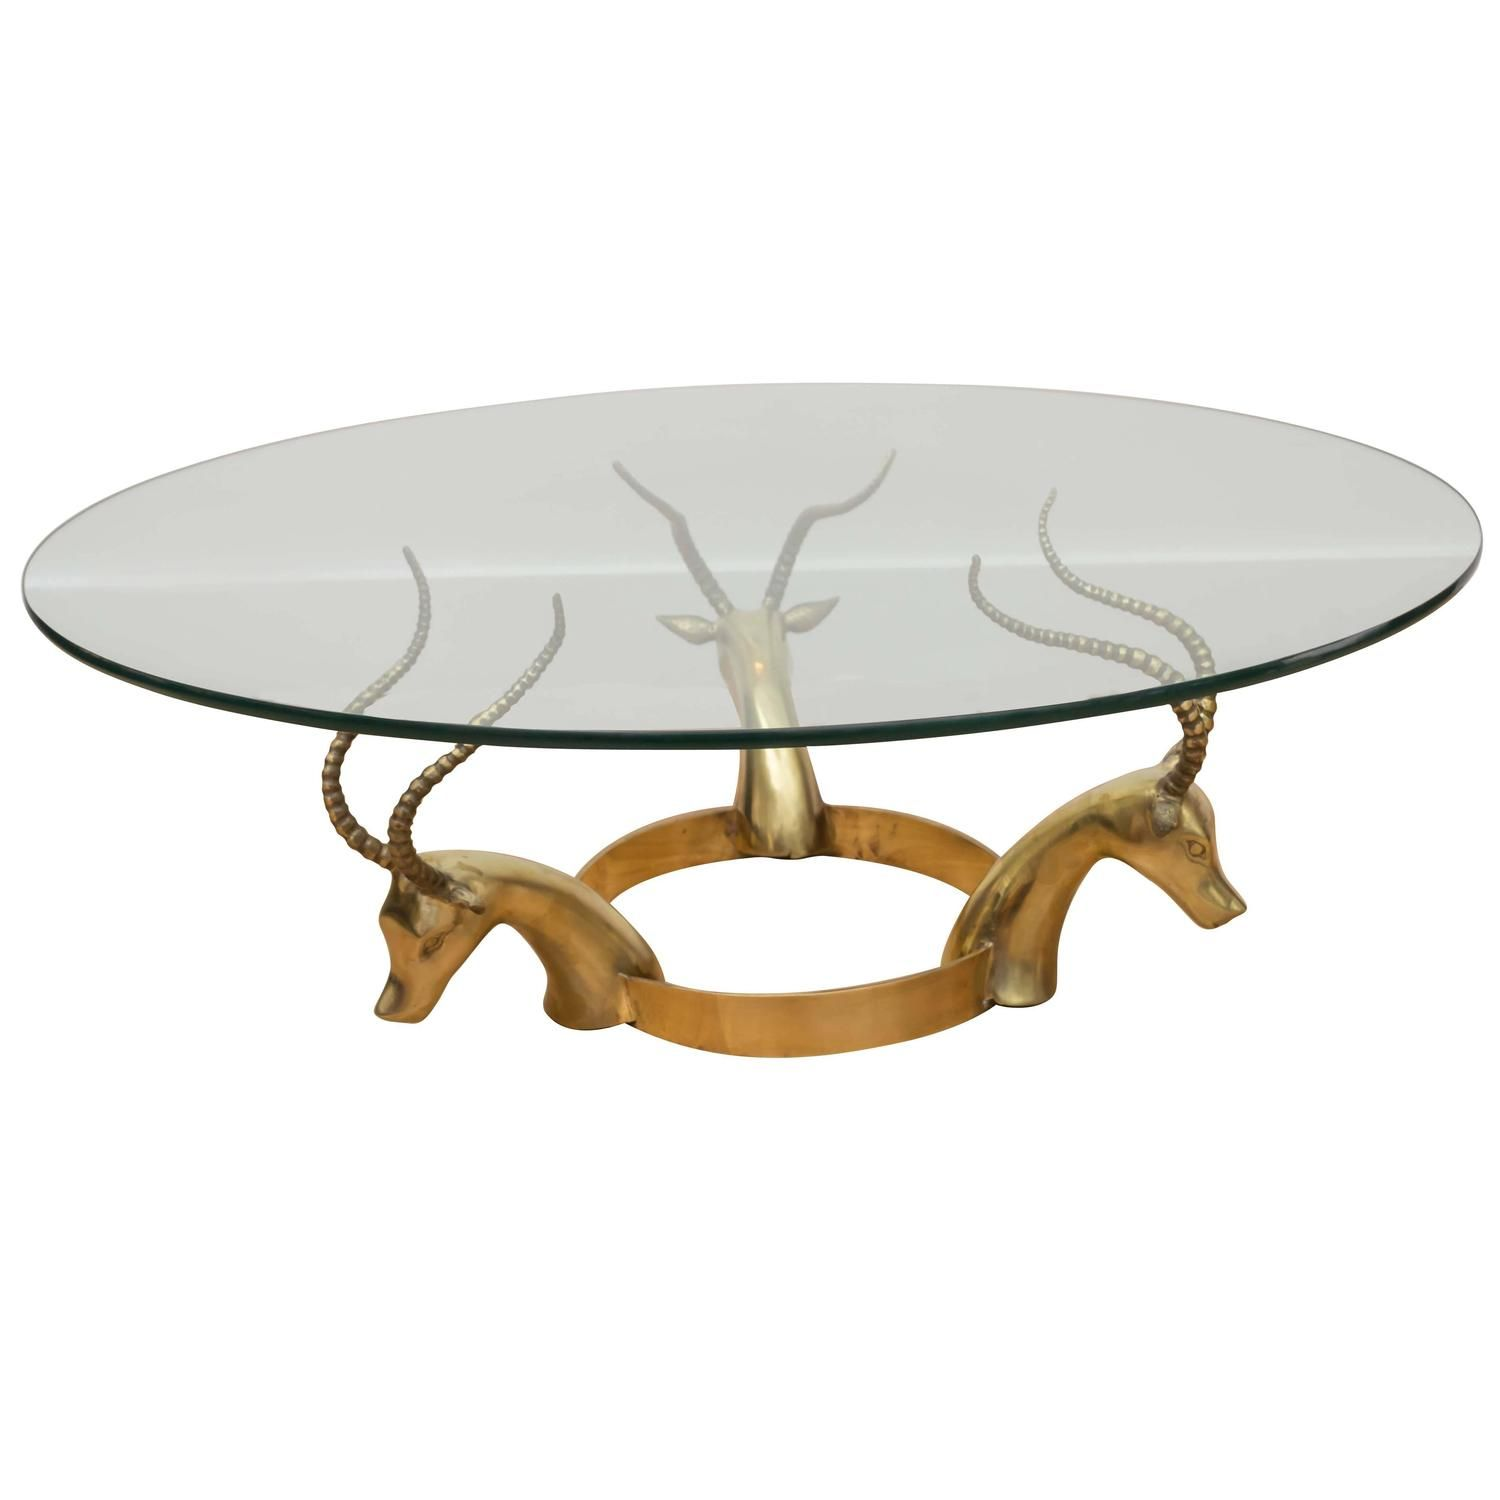 Brass Gazelle Cocktail Table From A Unique Collection Of Antique And Modern Coffee And Cocktail Tables At Https Www 1std Coffee Table Table Table Furniture [ 1500 x 1500 Pixel ]